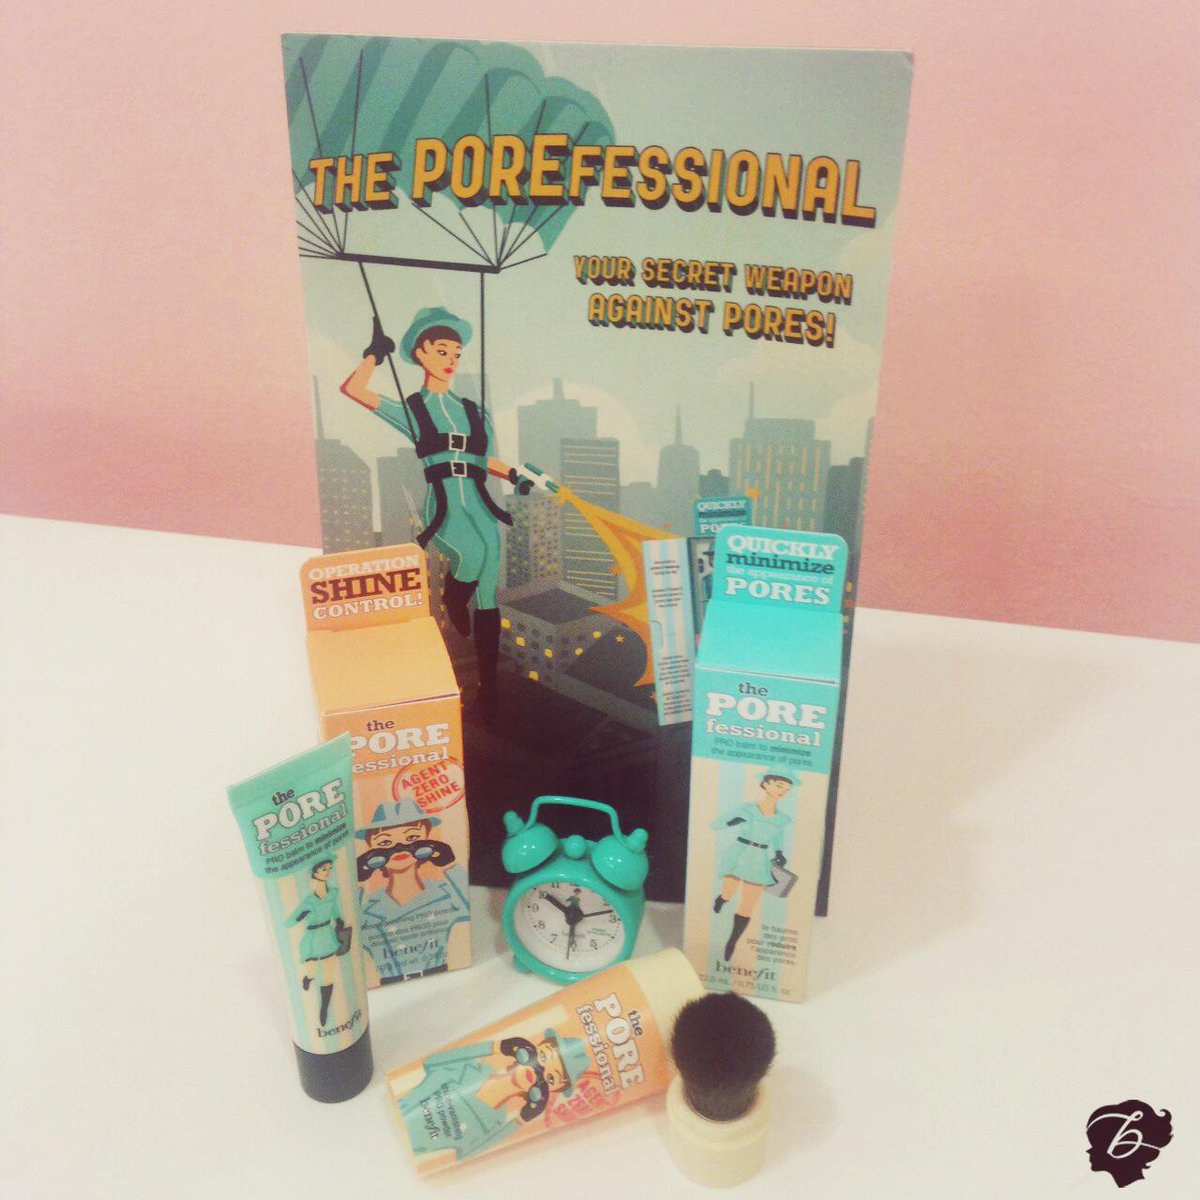 Want to win? RT to #WIN this exclusive Benefit Pore O'Clock package from @benefit_ire #poreoclock http://t.co/8eqHxLNZEN